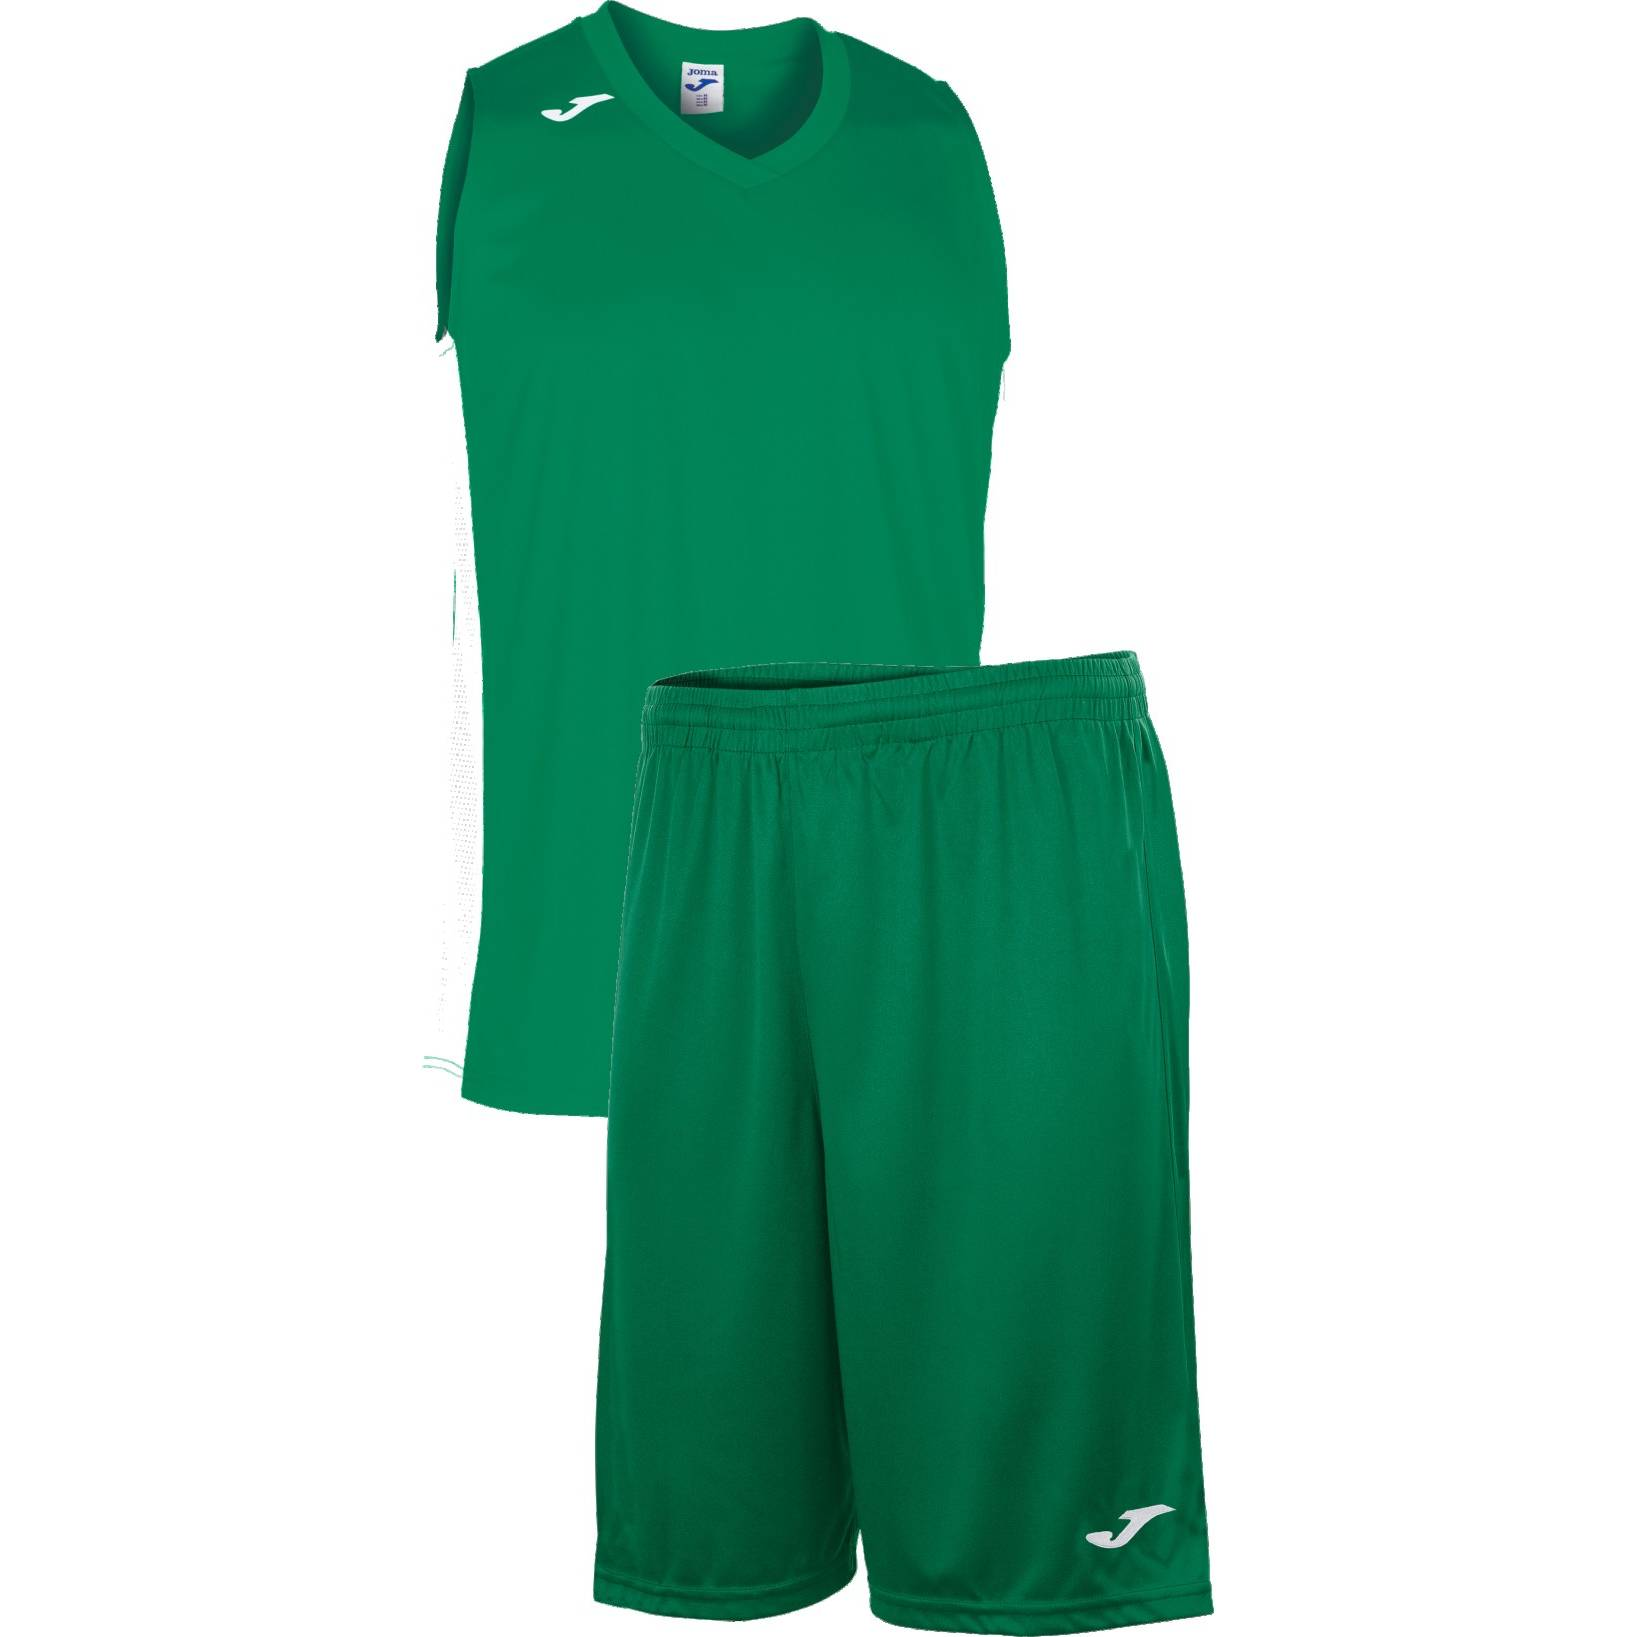 Teamwear - Joma Cancha Sleeveless  & Nobel Long Shorts Set - Green/White - JO-101573-452-101648-White